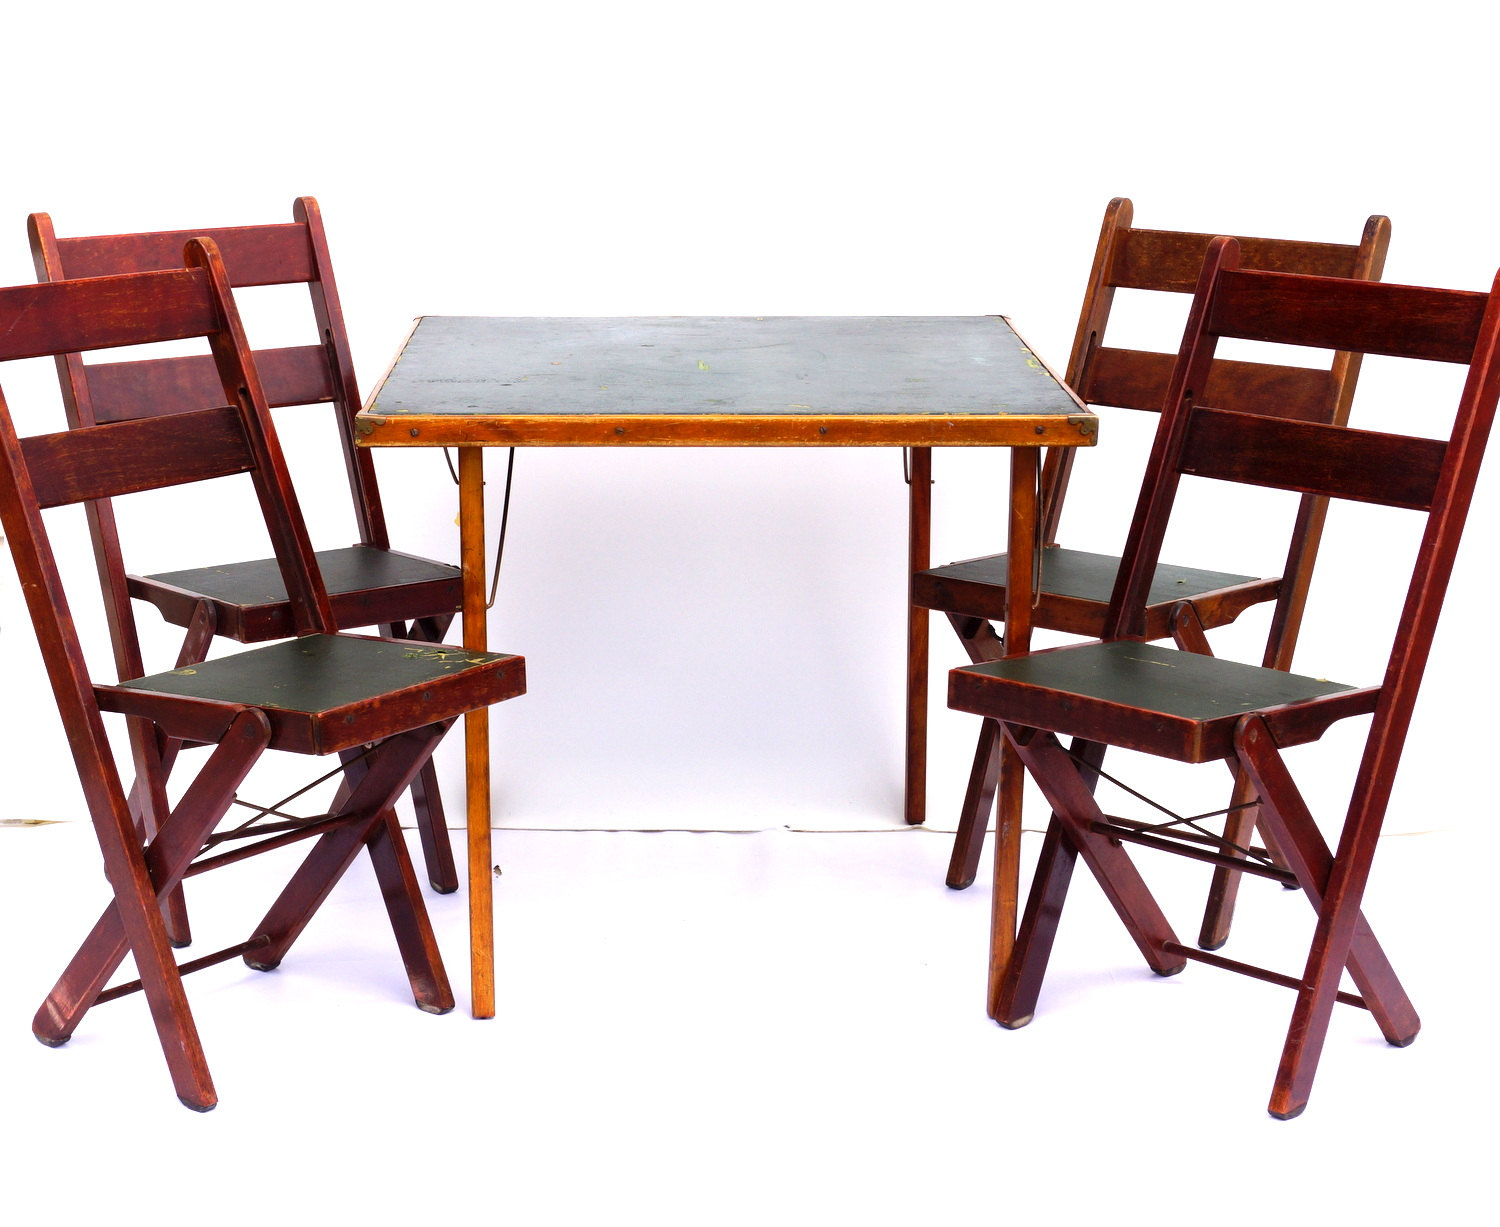 Image of: cosco mahogany folding table and chairs